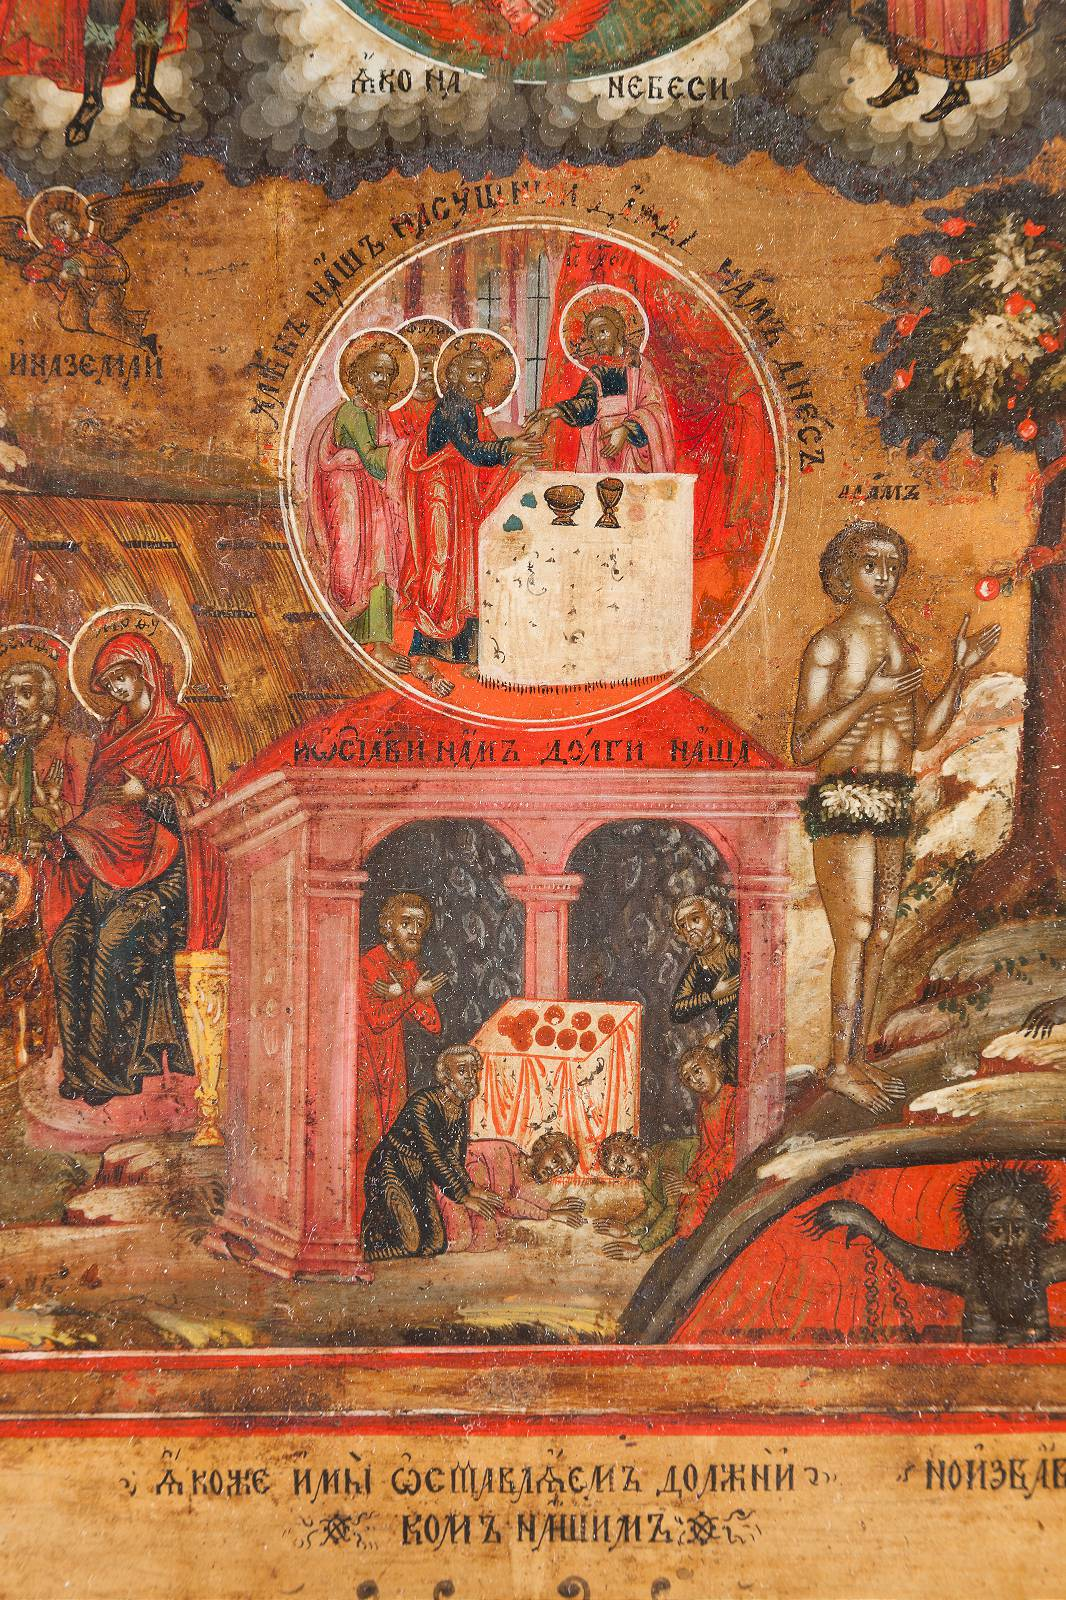 A VERY RARE ICON: A VISUAL REPRESENTATION OF THE LORD'S PRAYER 'OUR FATHER'Russian, circa 1800 - Image 5 of 6